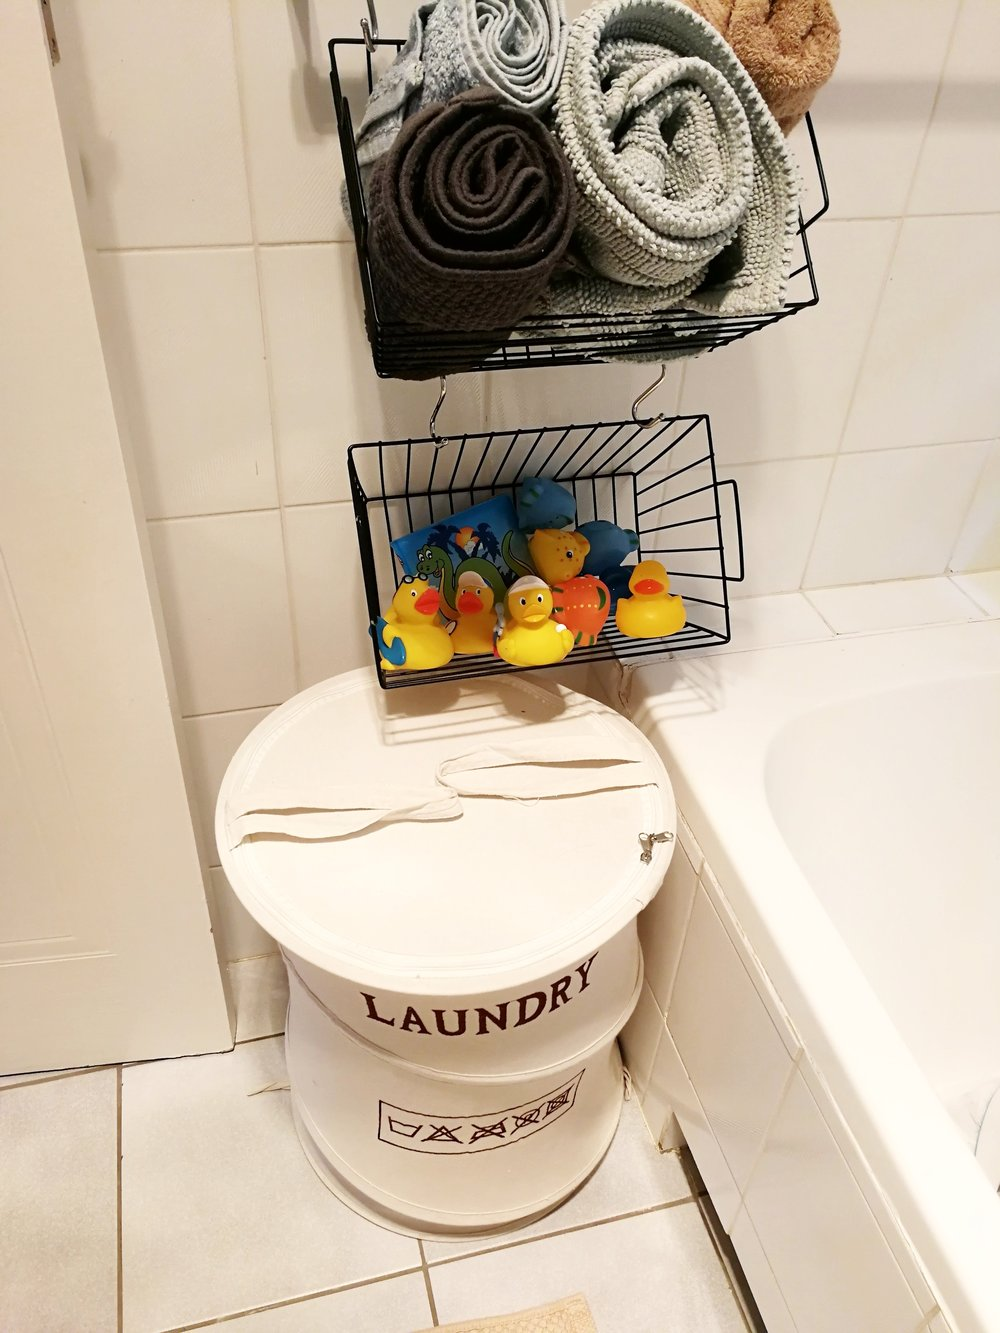 Clever baby and kids bathroom toys storage solution by Tassels & Tigers interiors in Johannesburg